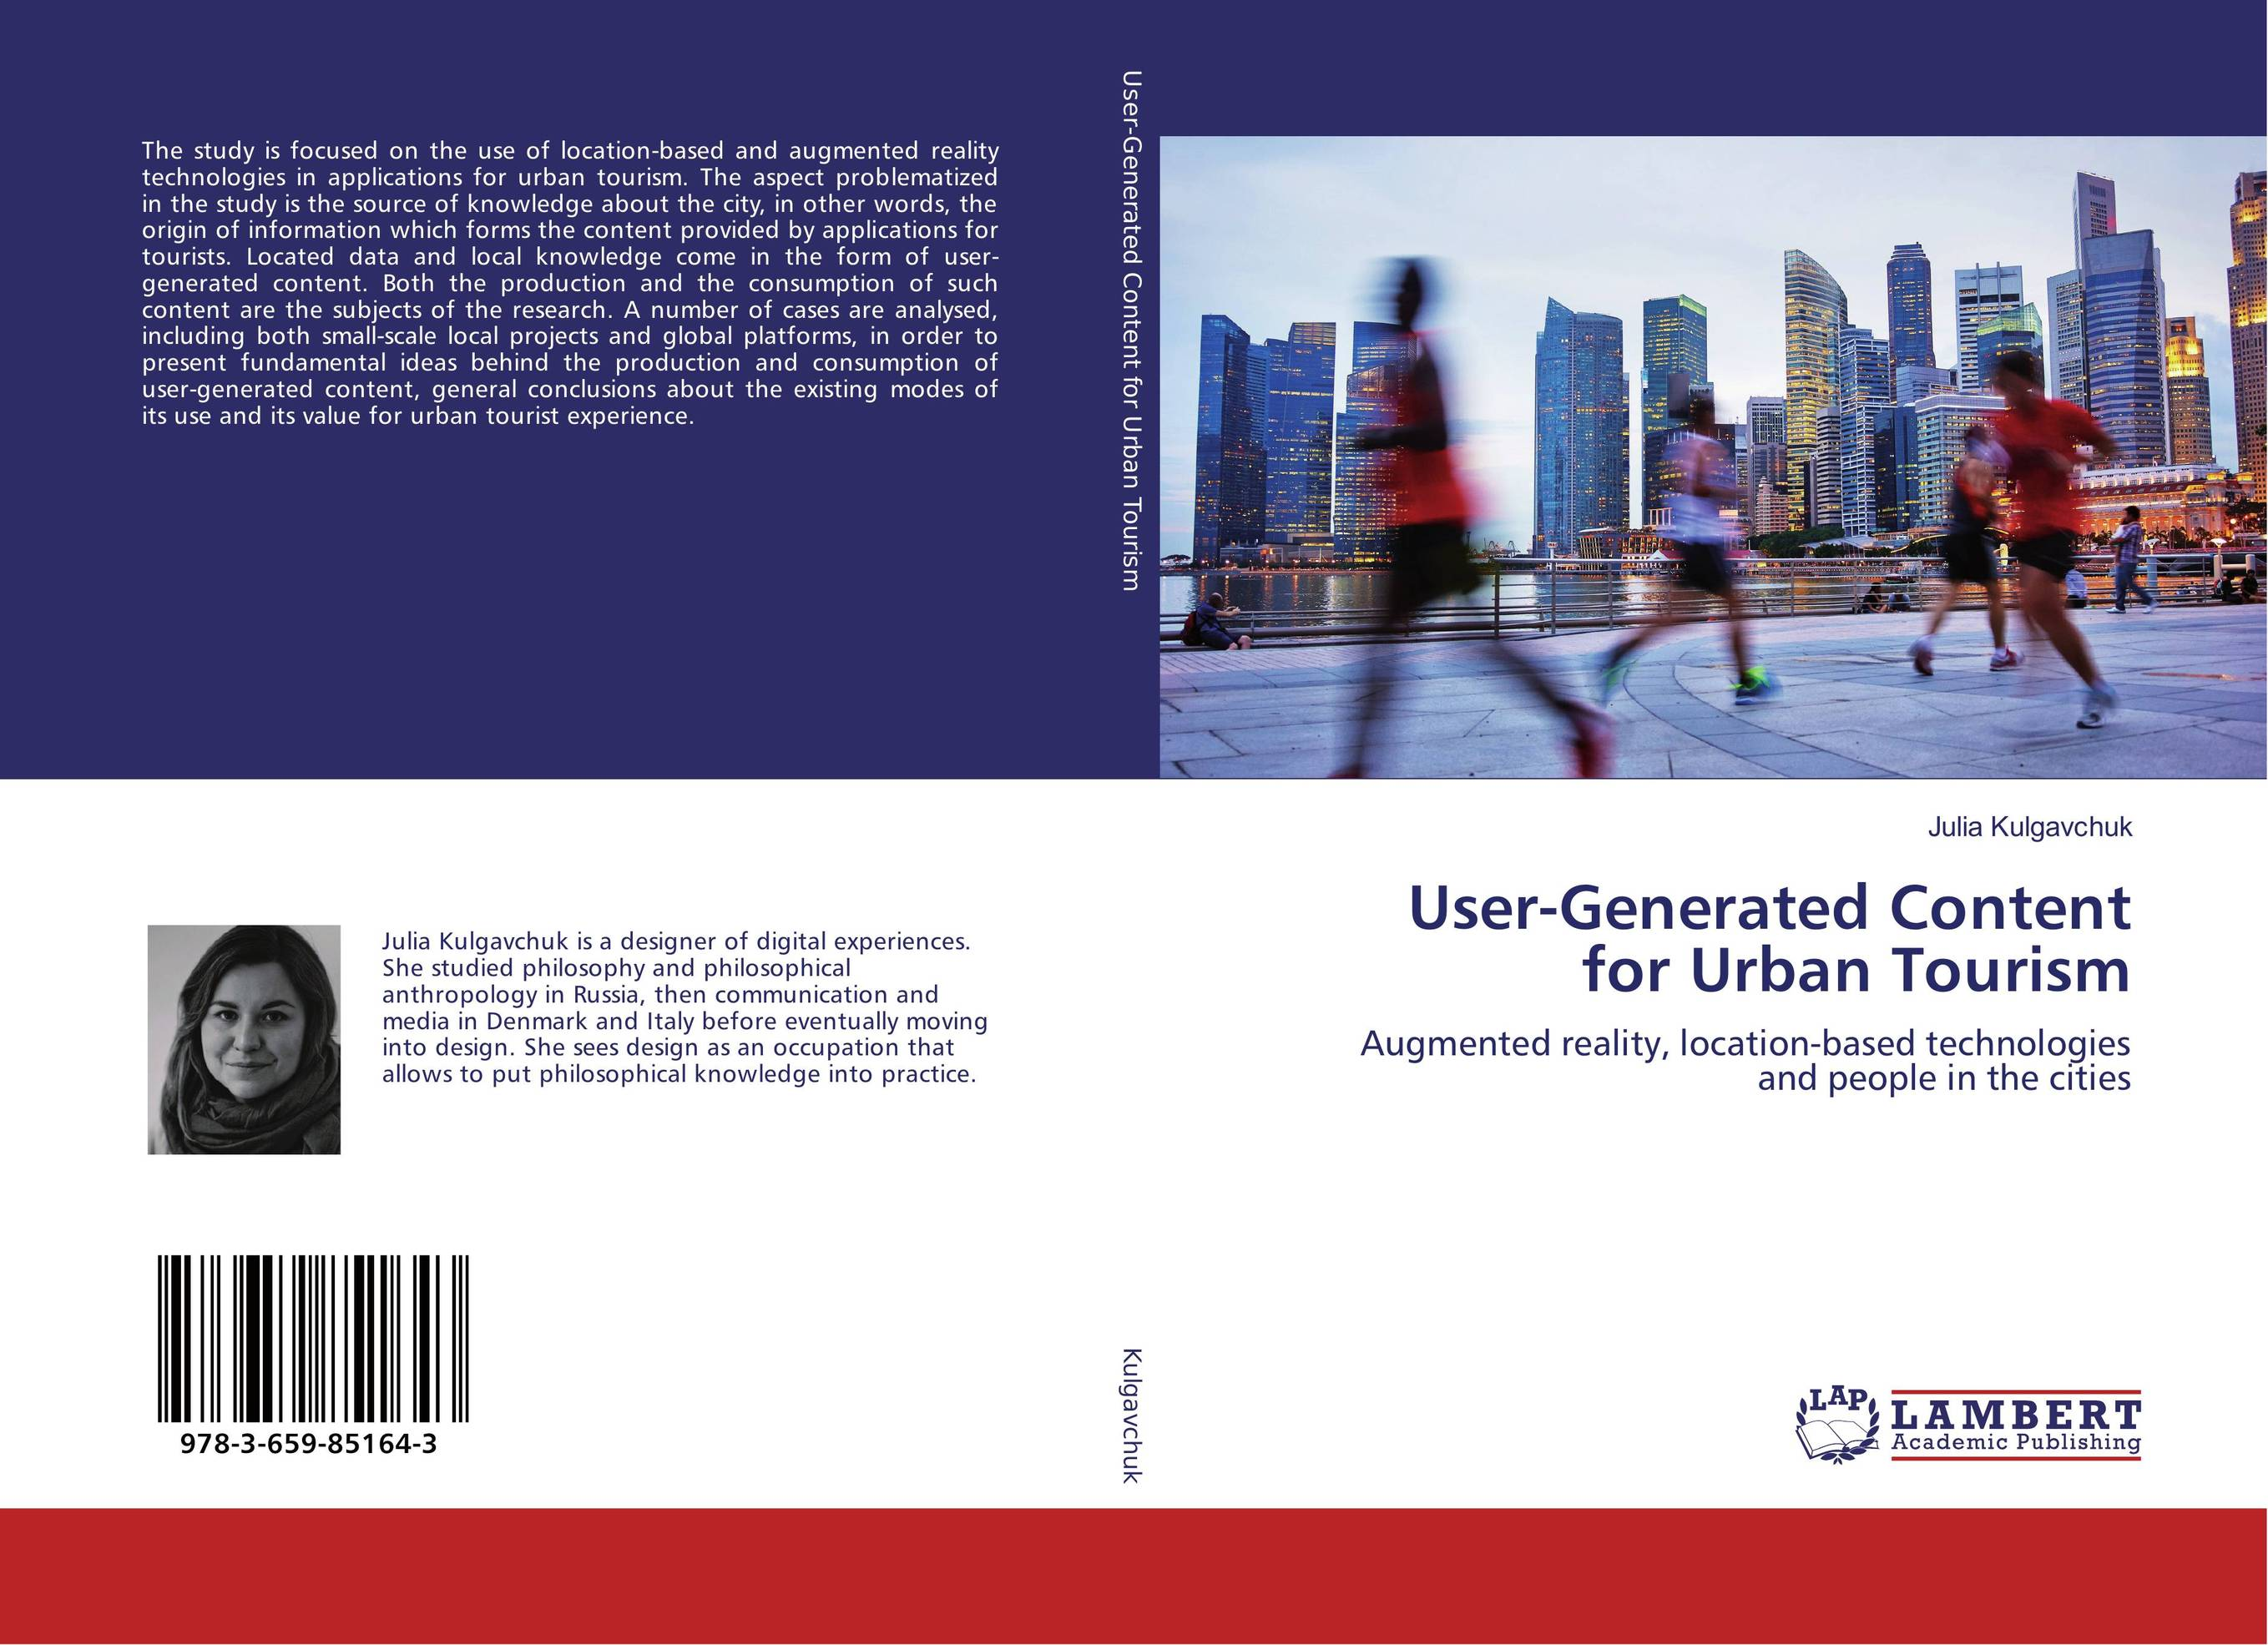 User-Generated Content for Urban Tourism